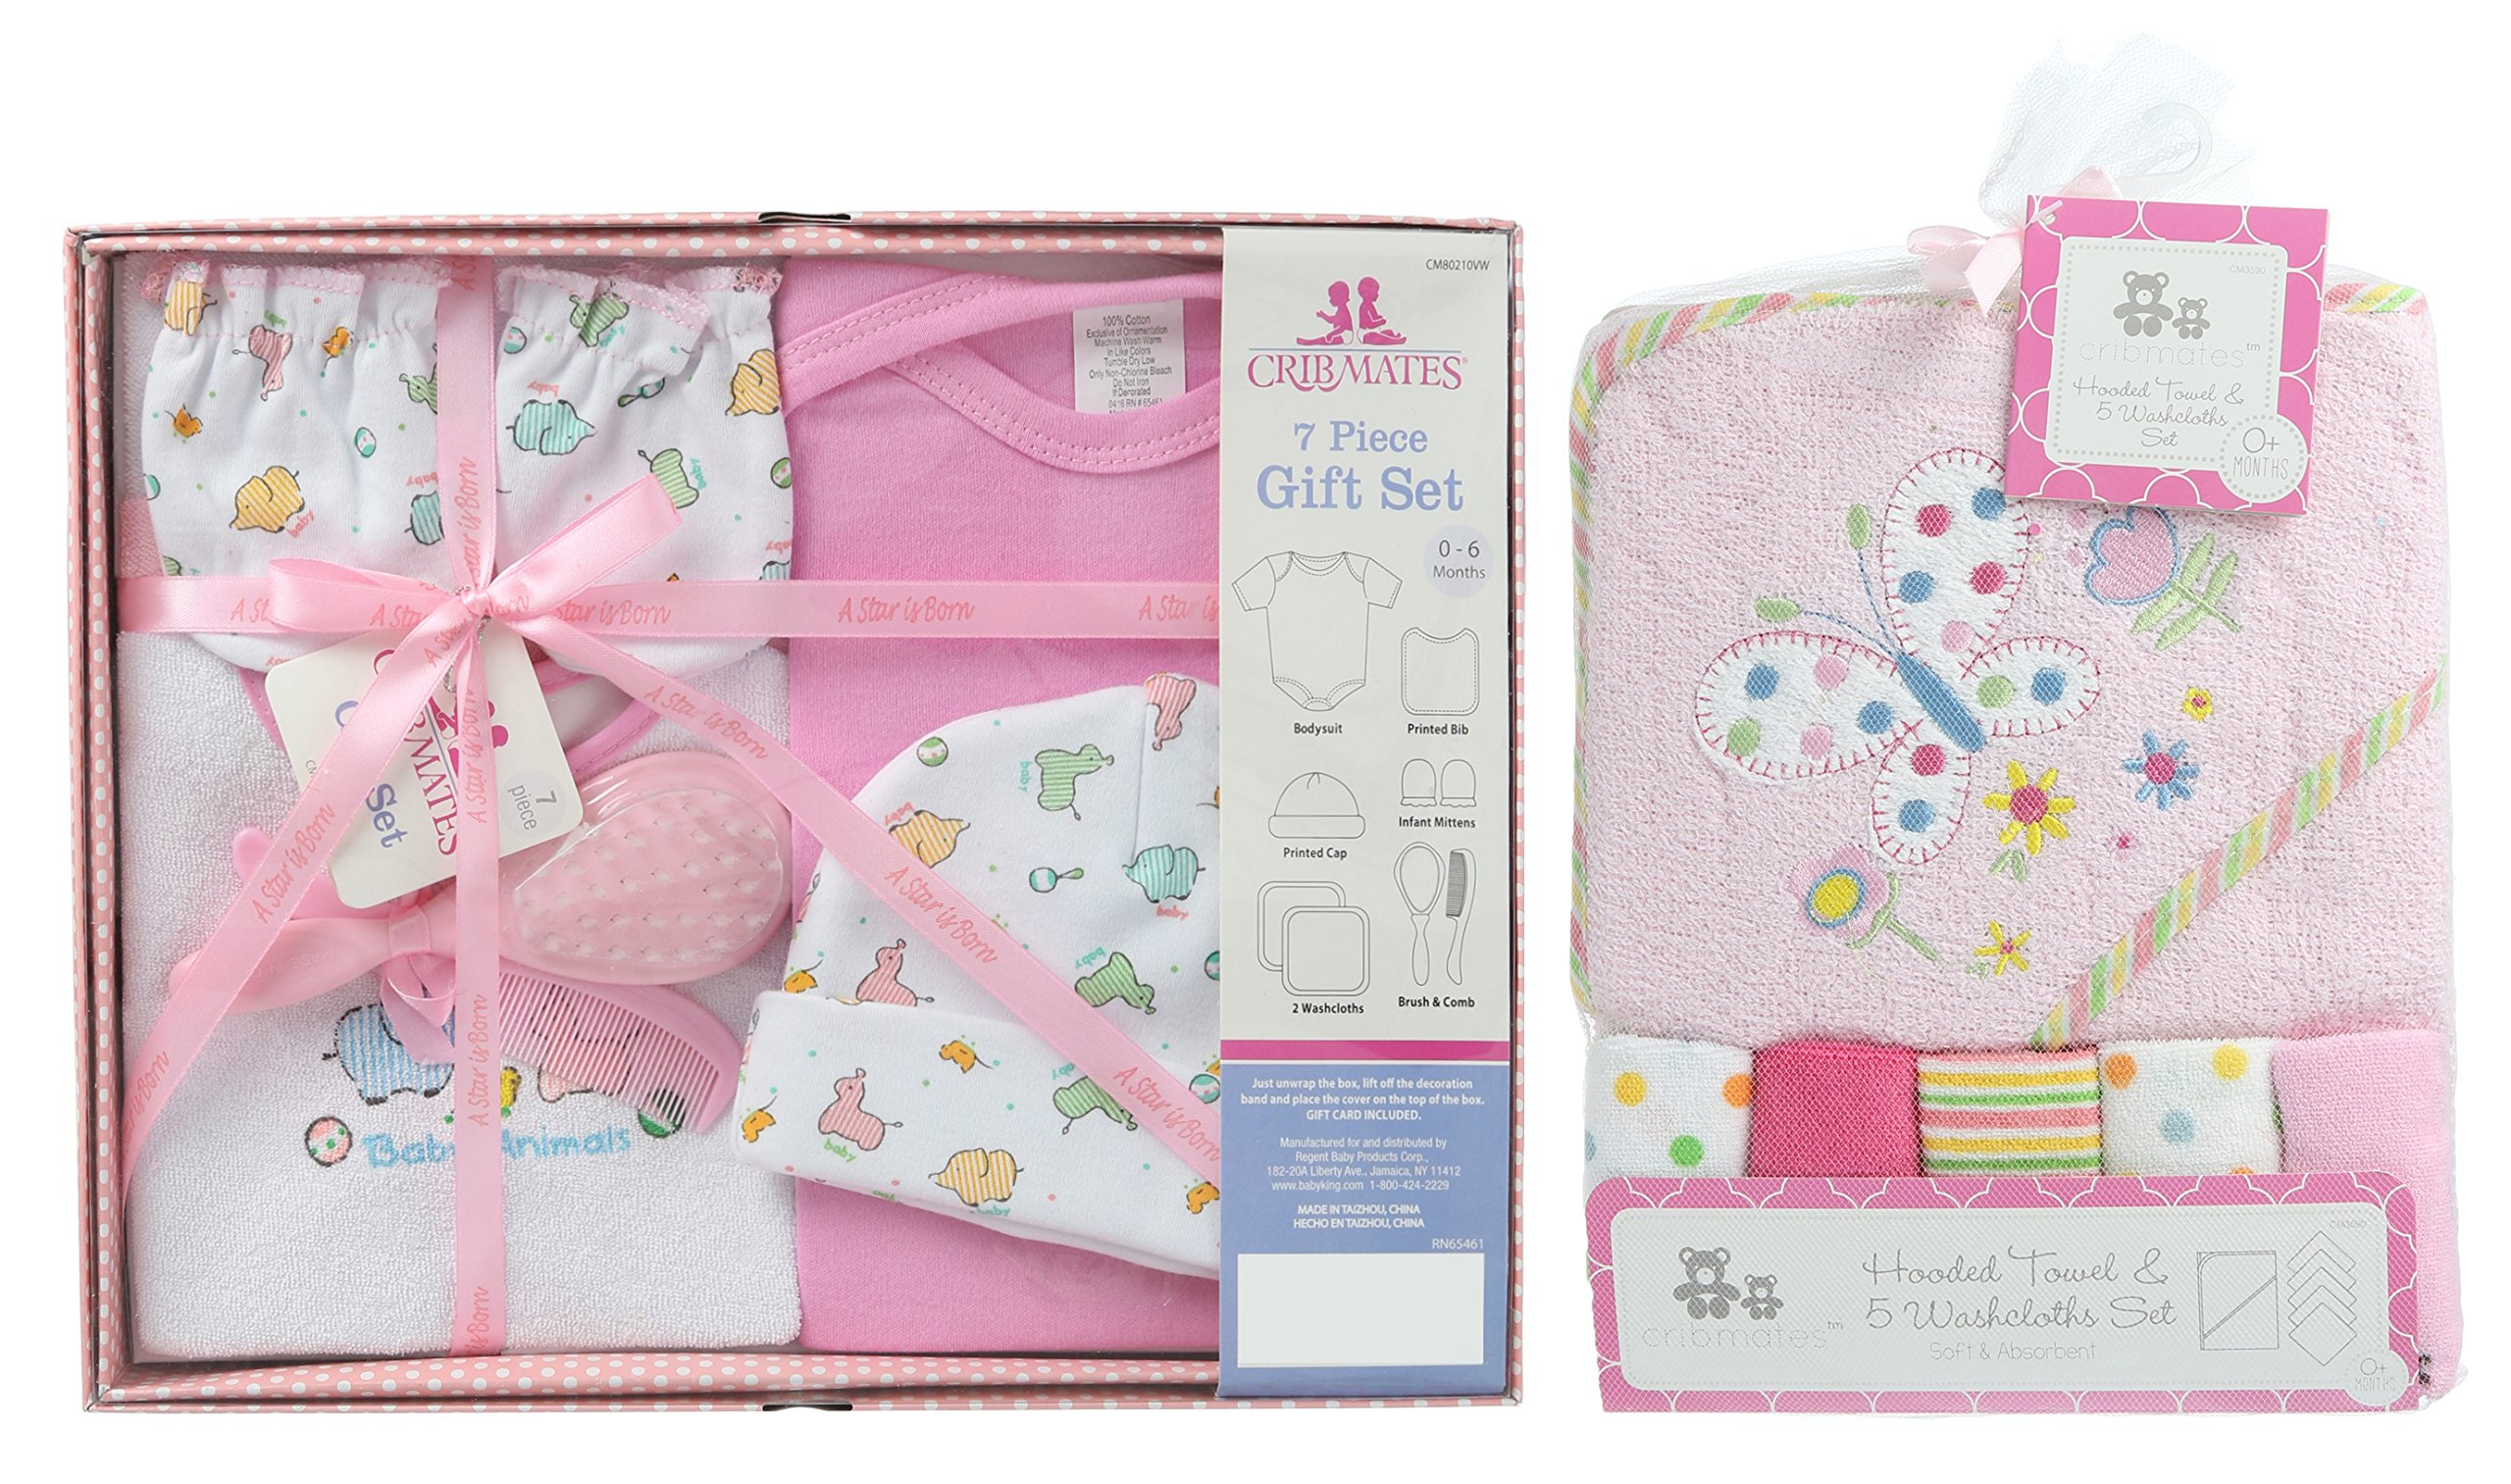 Baby Bath Items Giftset-7 pc and Baby Hoded Towel with Washclothes Bundle, includes Bib,Baby Cap, Baby Mittens, Creeper , Brush and Comb -Pink